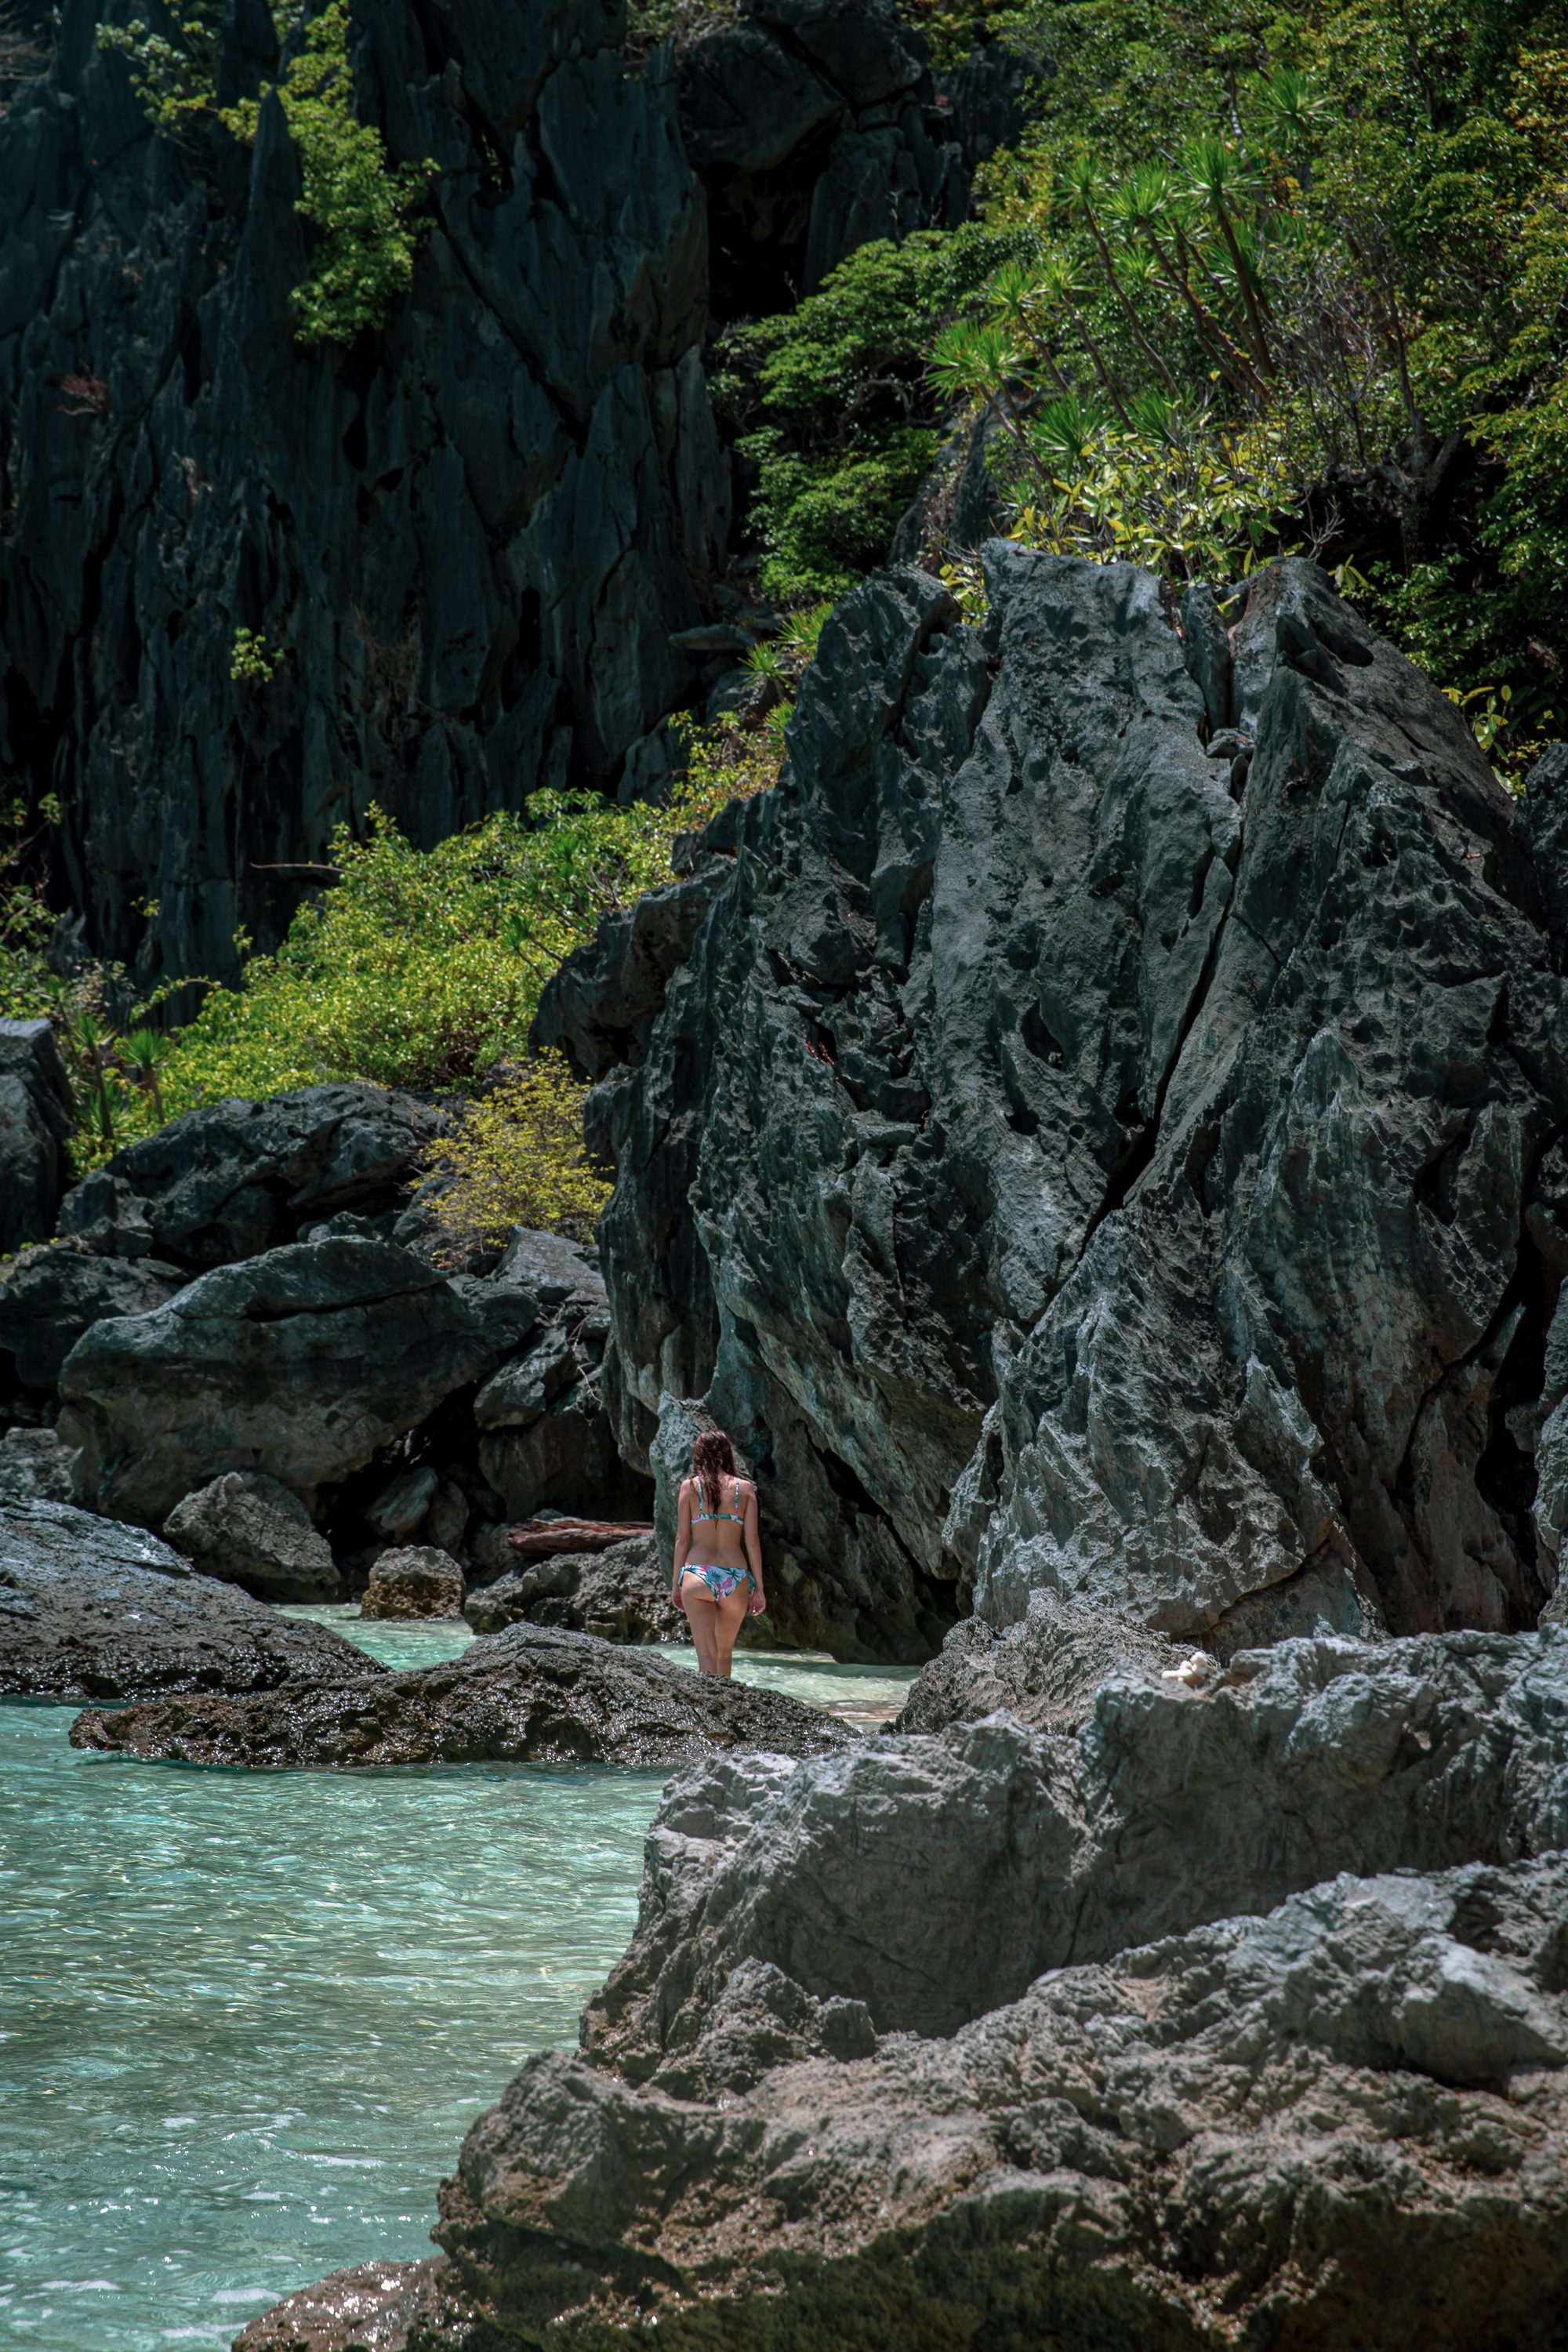 el nido travel guide, what to do in el nido, el nido boat tours, el nido boat tour c, where to go in el nido, where to stay in el nido, getting to el nido, how to get to el nido, is going to el nido worth it, palawan, philippine islands, el nido paradise